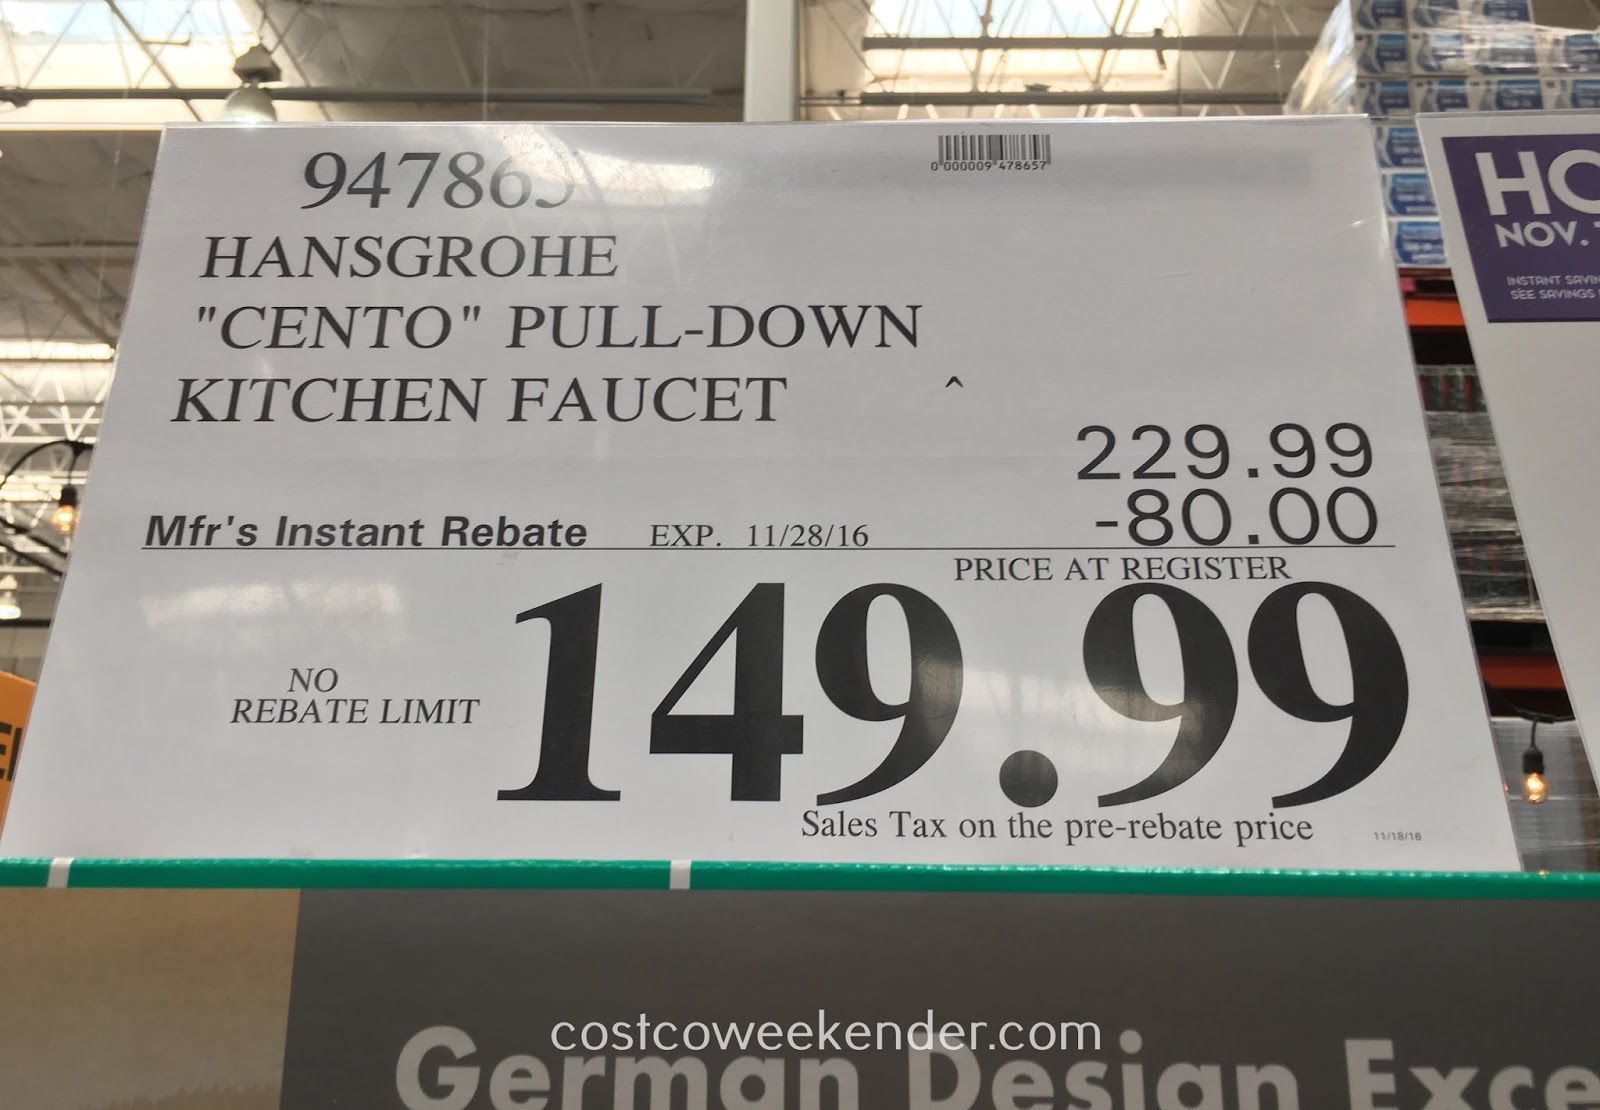 hansgrohe cento higharc kitchen faucet costco costco kitchen faucet Deal for the Hansgrohe Cento Pull Down Kitchen Faucet at Costco